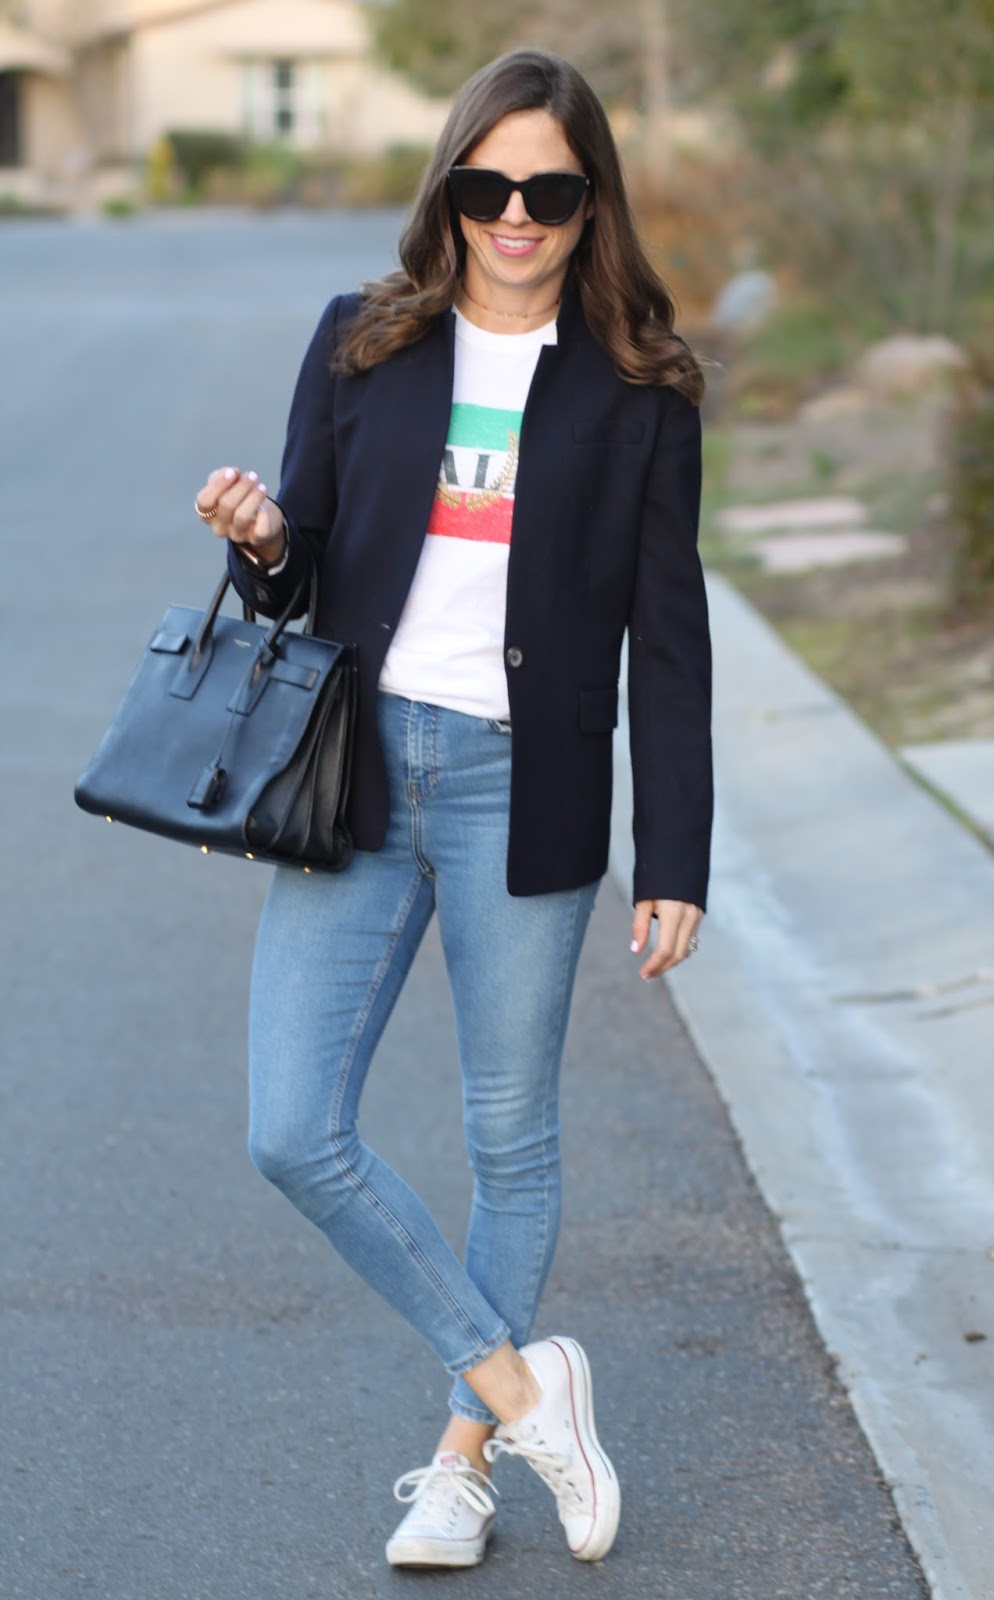 blazer and skinny jeans outfit